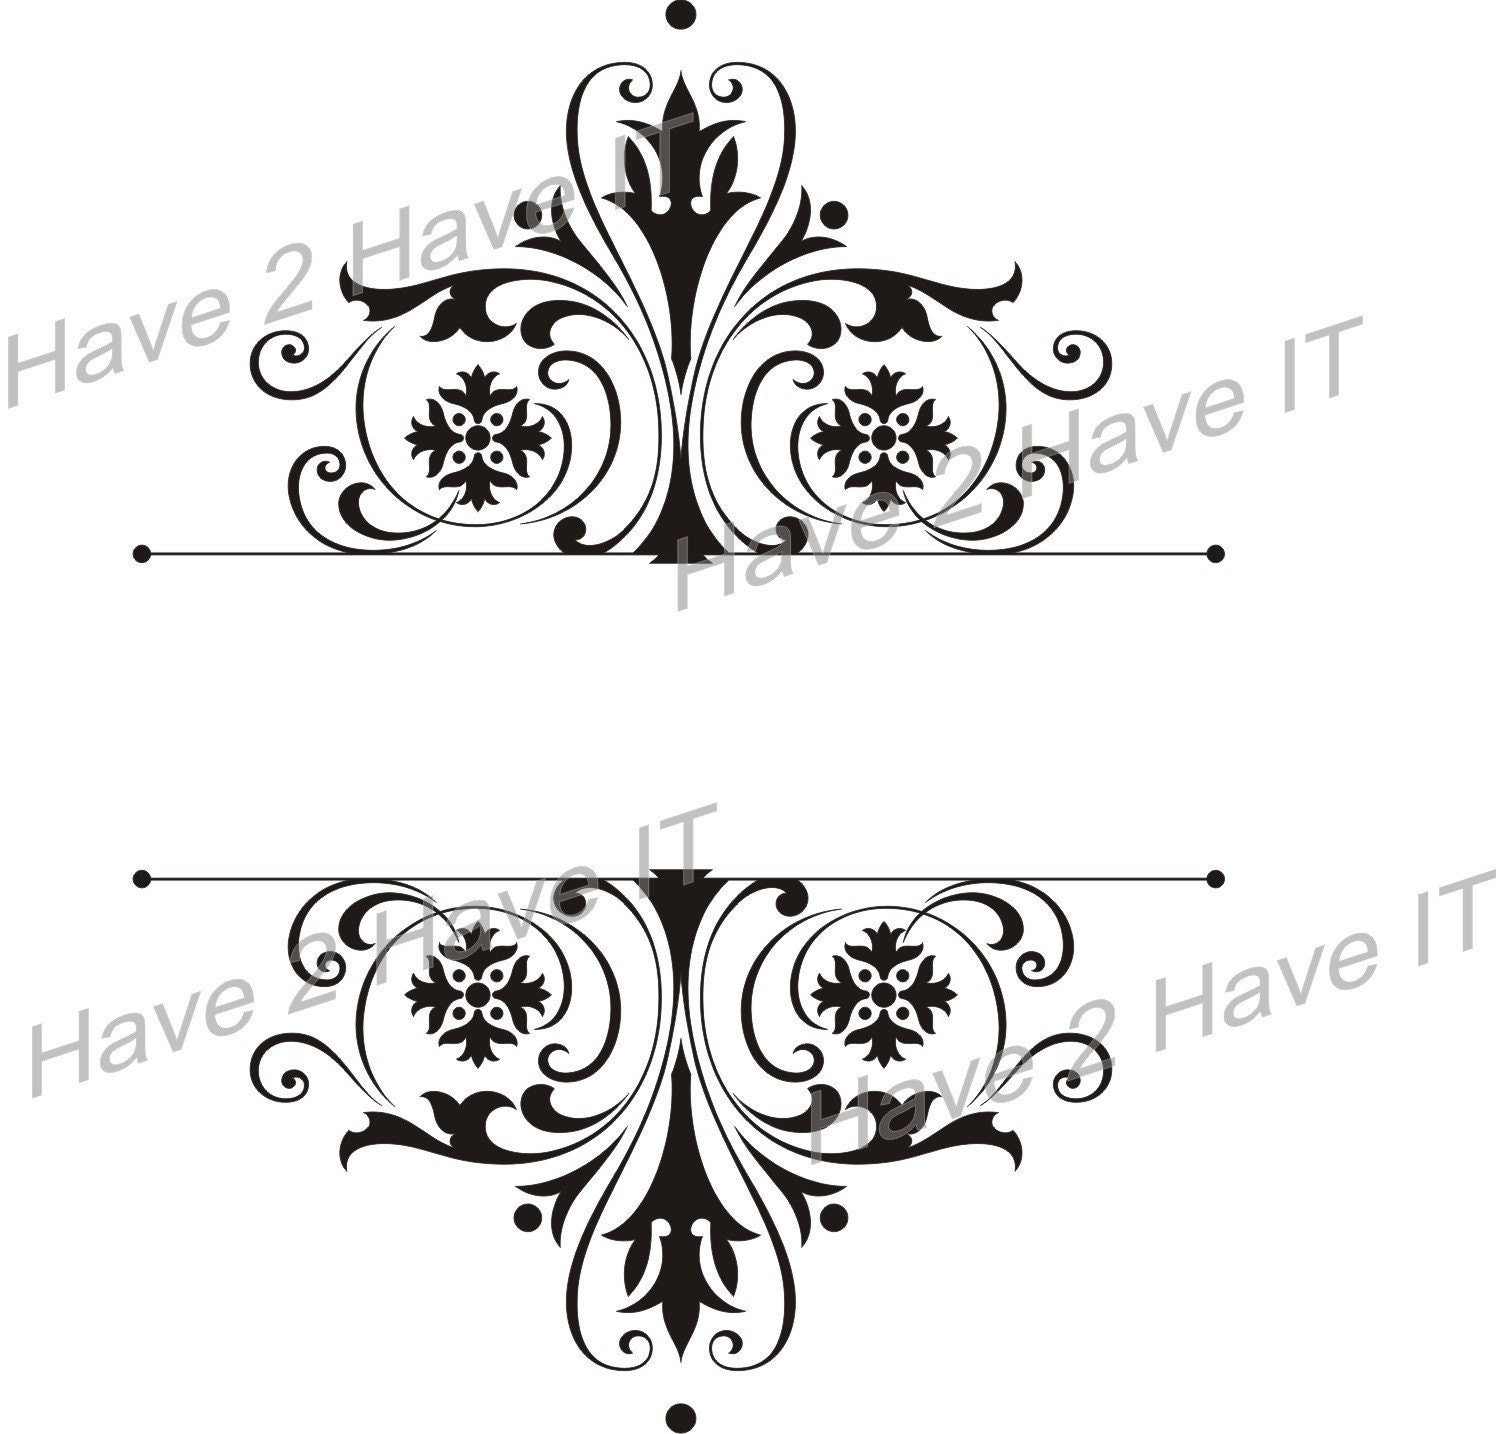 1 Damask SVG, AI, EPS, CDR vector files and FREE JPG High Resolution file